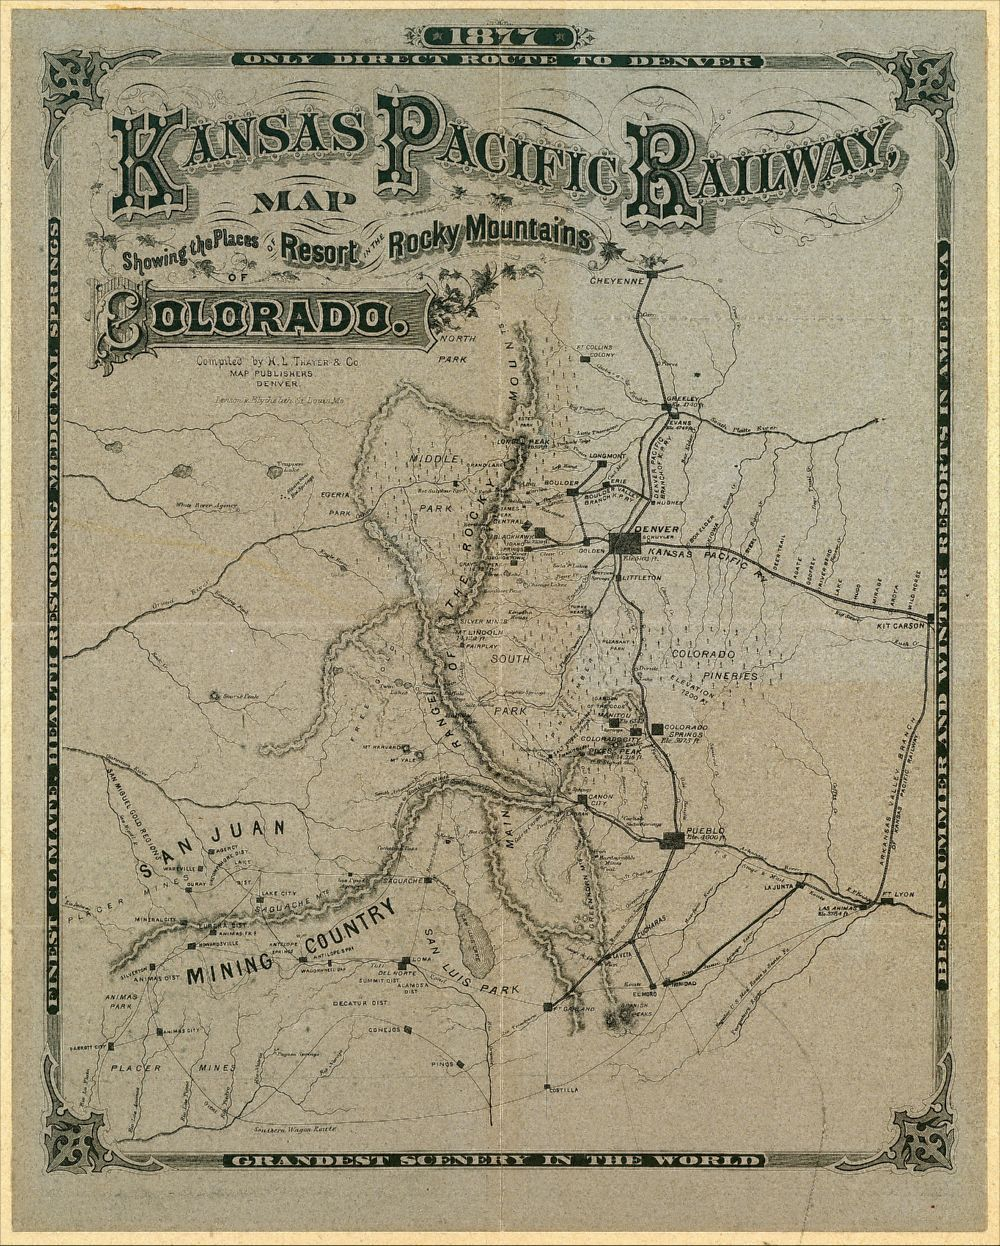 Kansas Pacific Railway map of Colorado   Kansas Memory   Kansas     Kansas Pacific Railway map of Colorado